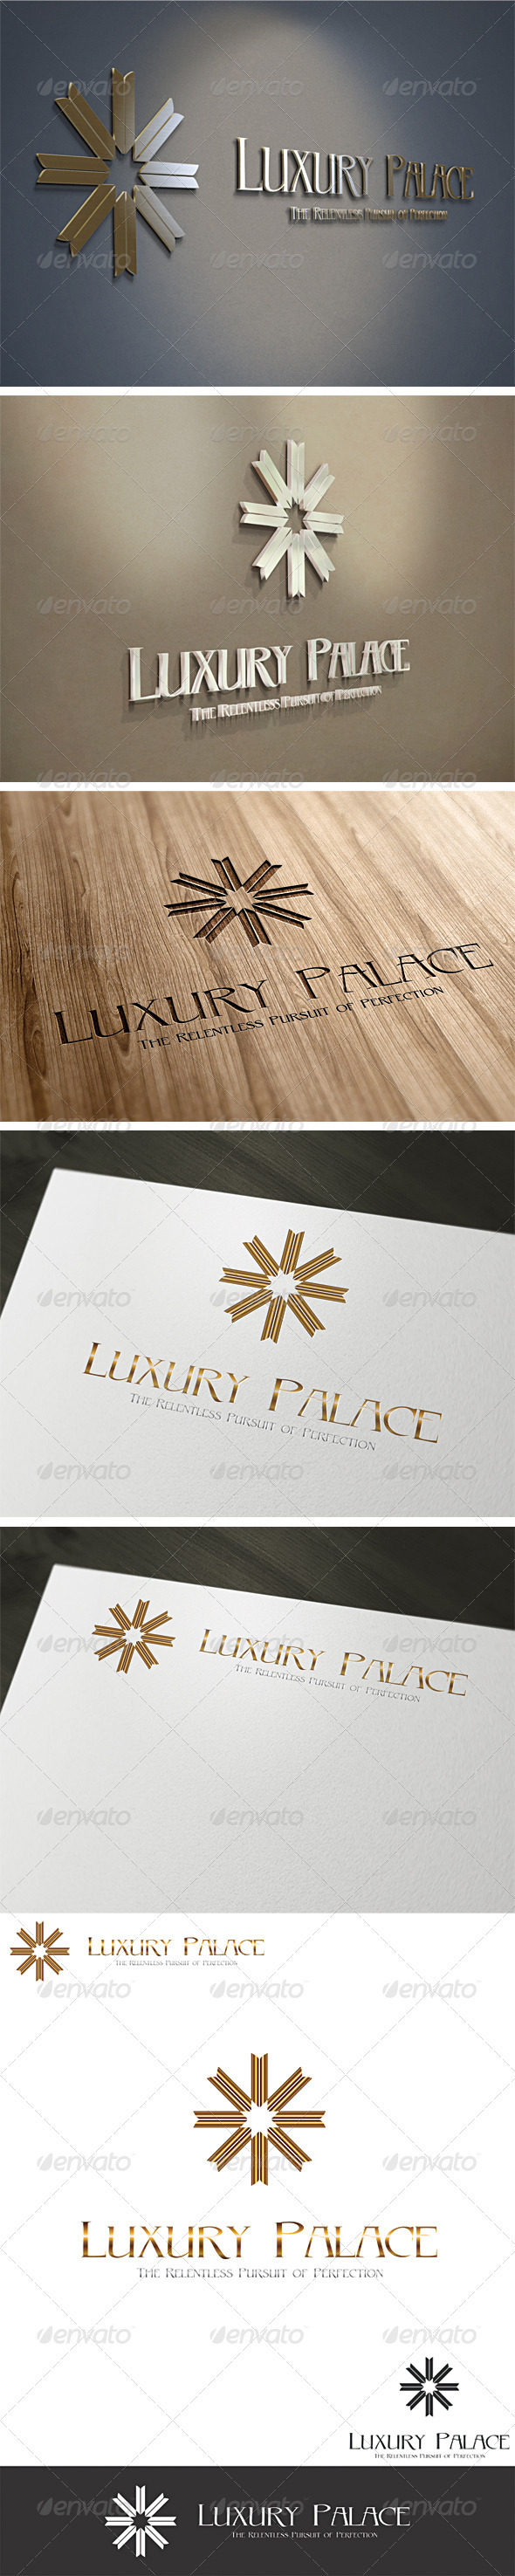 3D Luxury Hotels Logo Template V2 - 3d Abstract